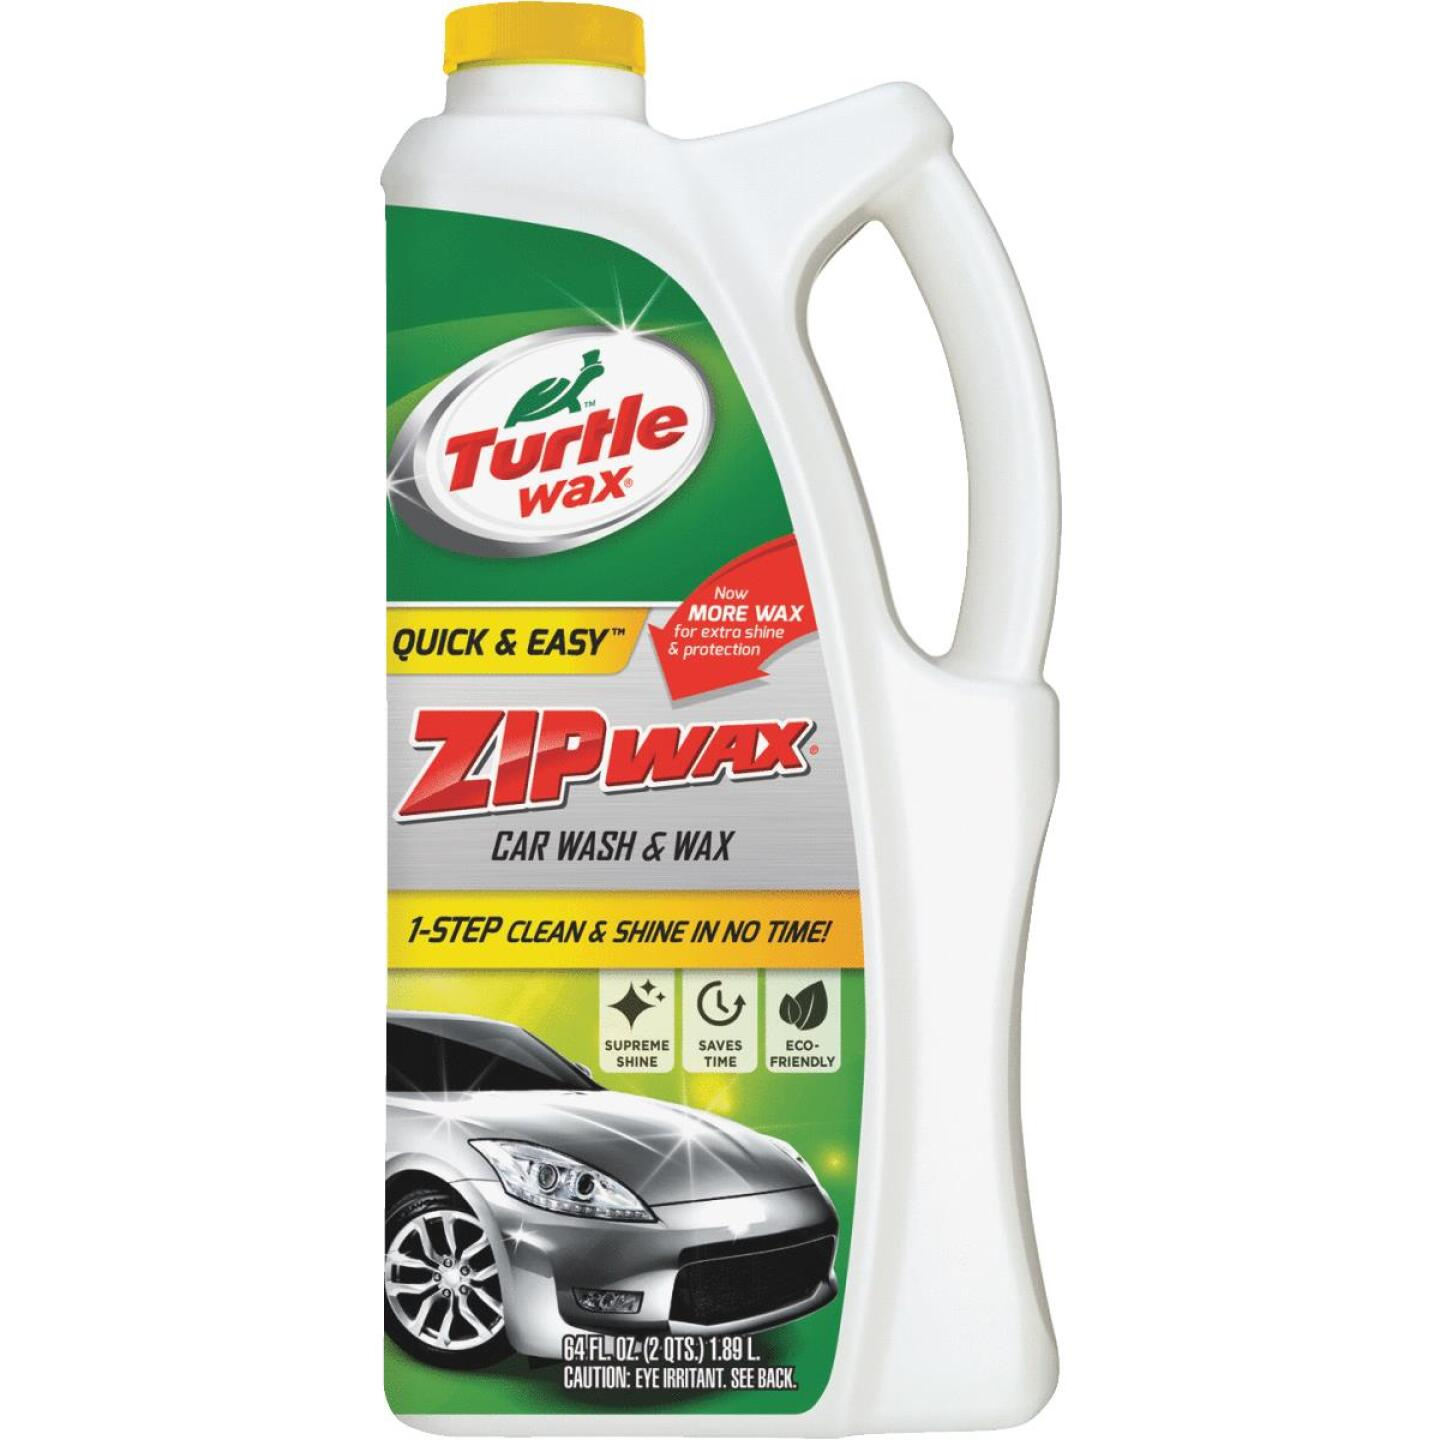 Turtle Wax Zip Wax 64 Oz. Liquid Car Wash & Wax Image 1